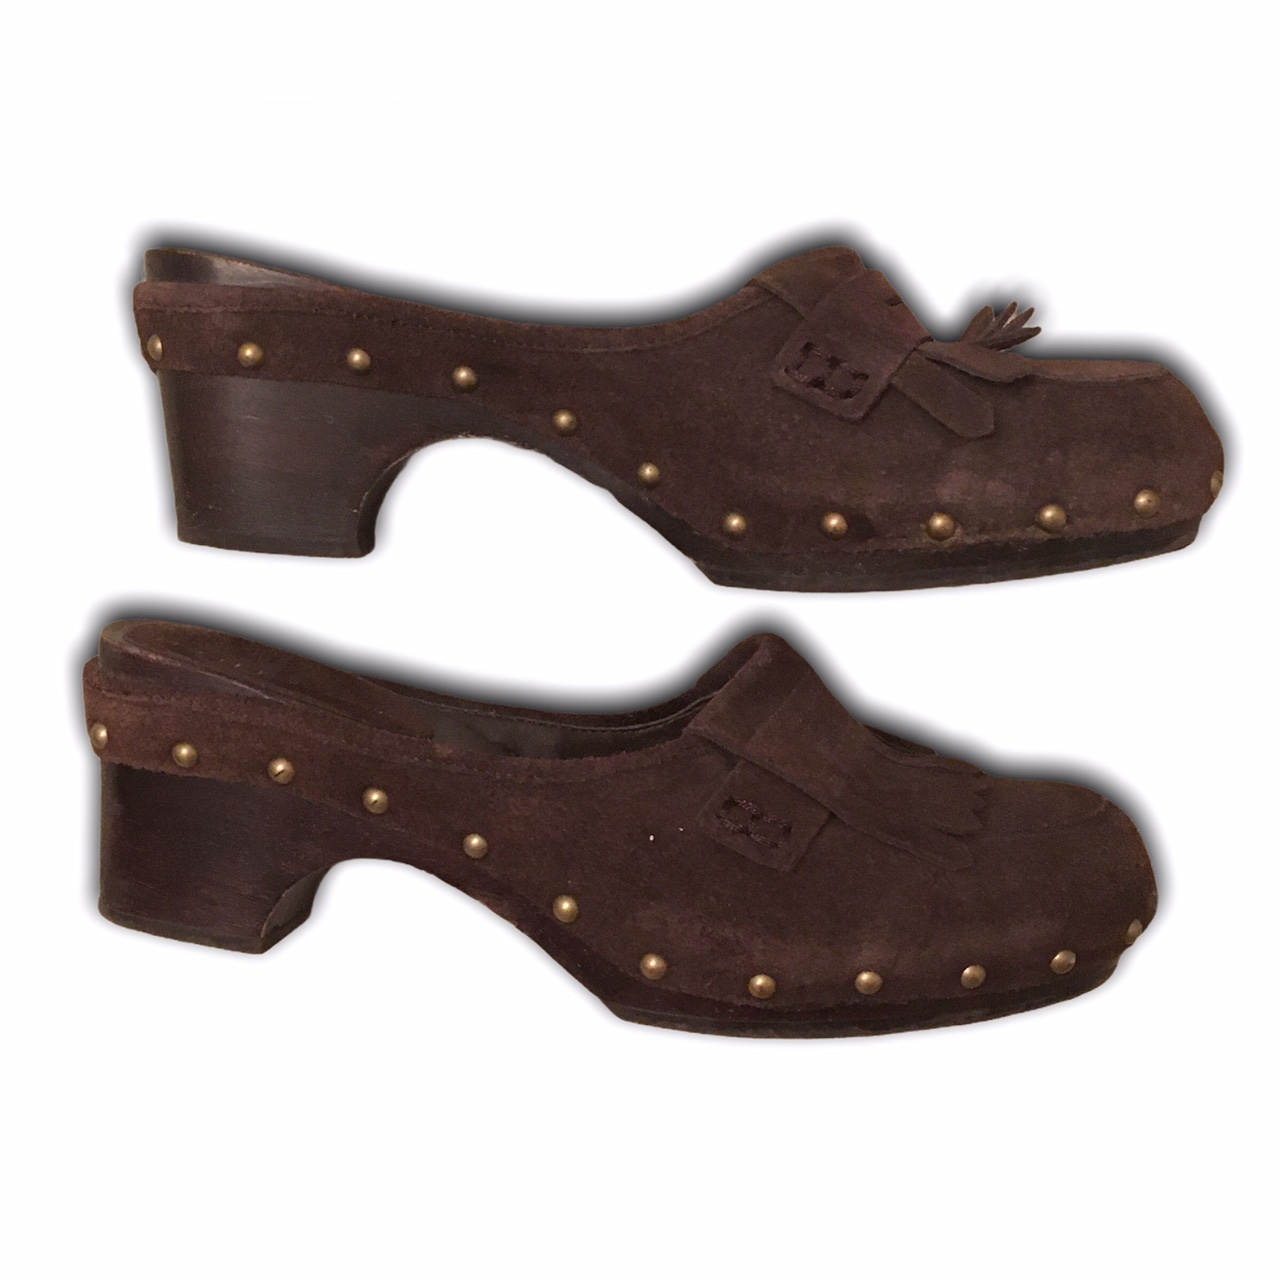 Product Image 1 - amazing vintage fairycore loafers <3  look